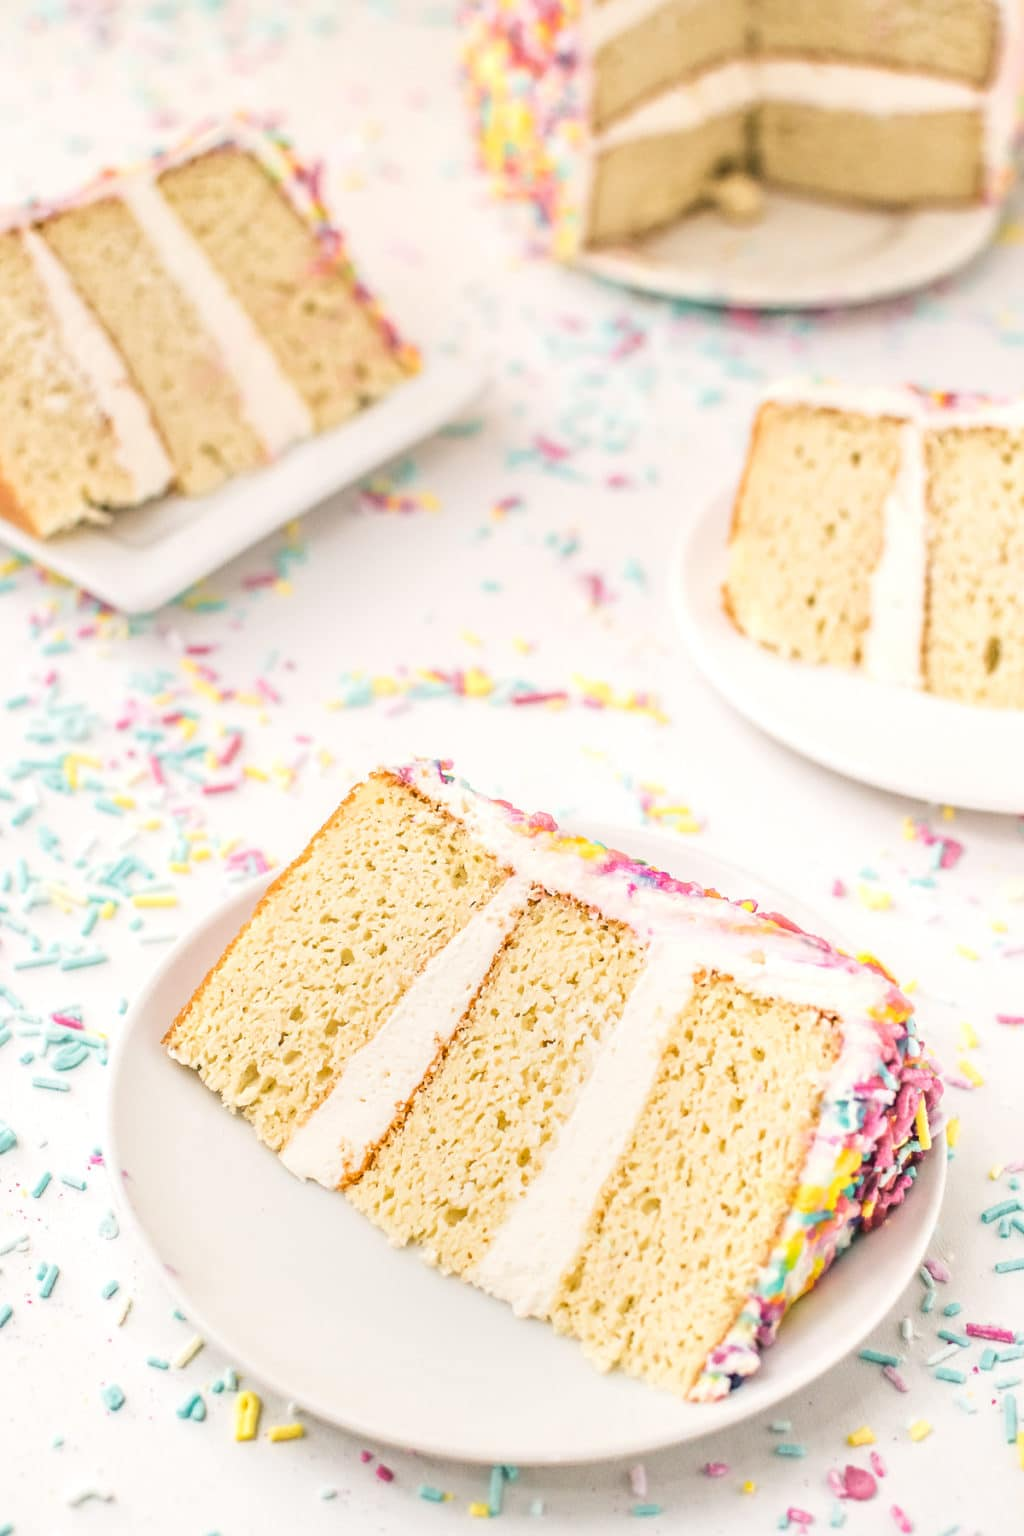 Slices of low carb birthday cake with white icing surrounded by sprinkles